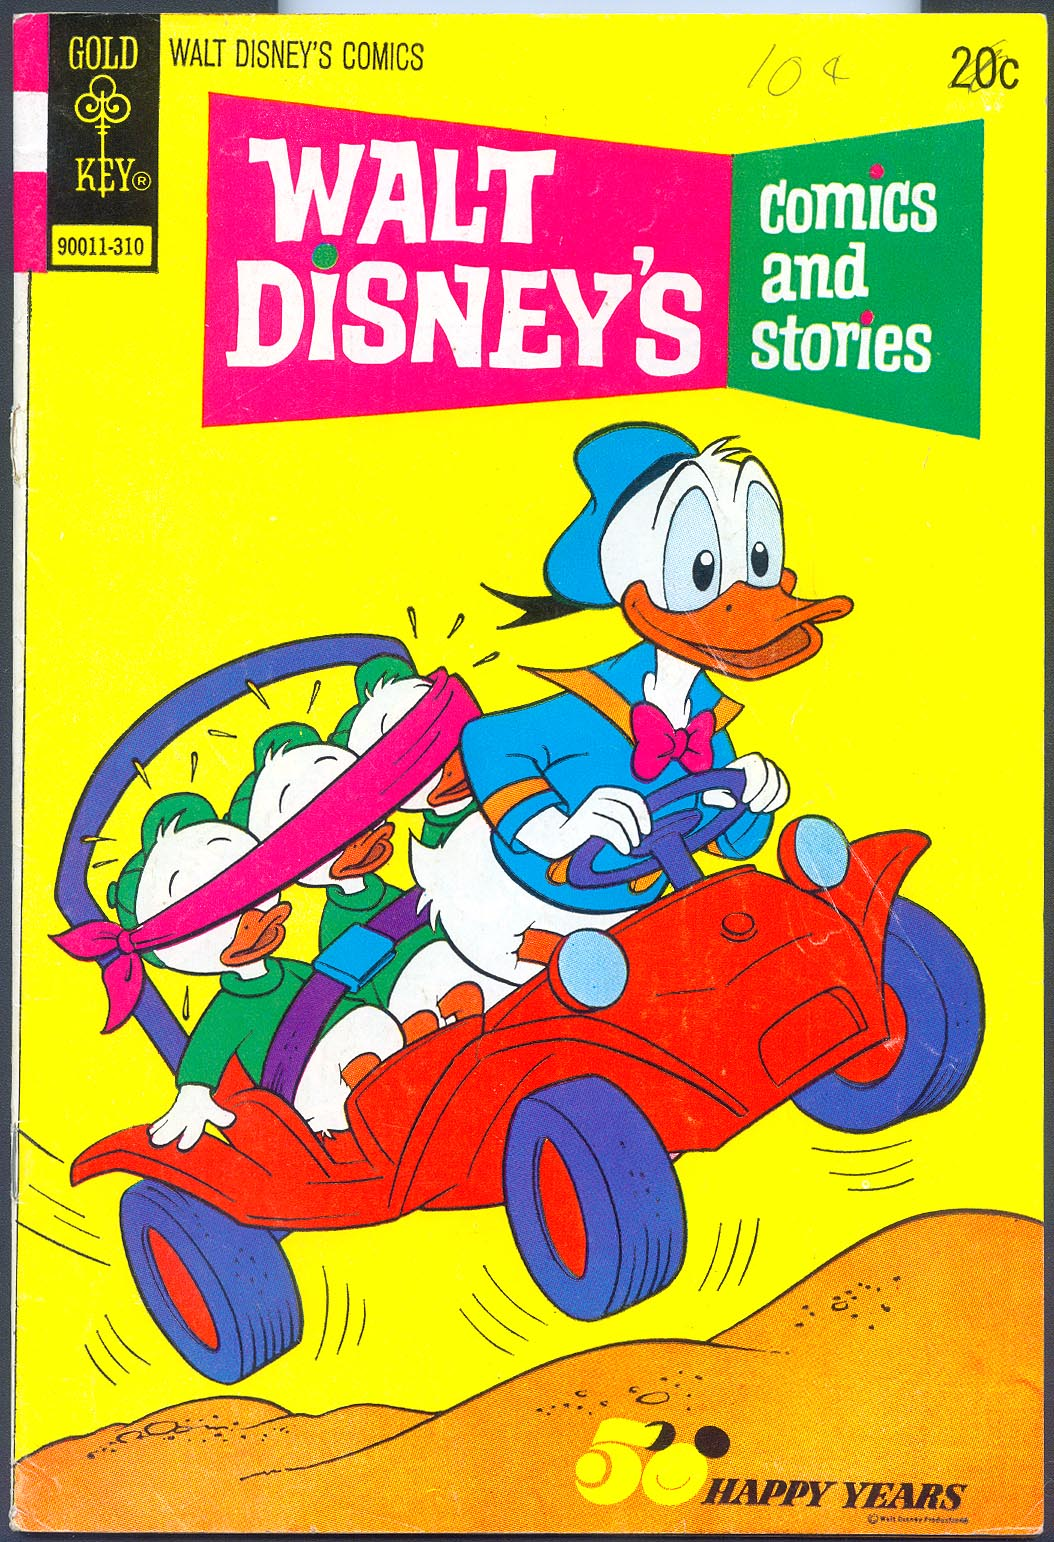 Walt Disneys Comics and Stories (Gold Key) 397 (Also Vol 34 - 1 ) -VG